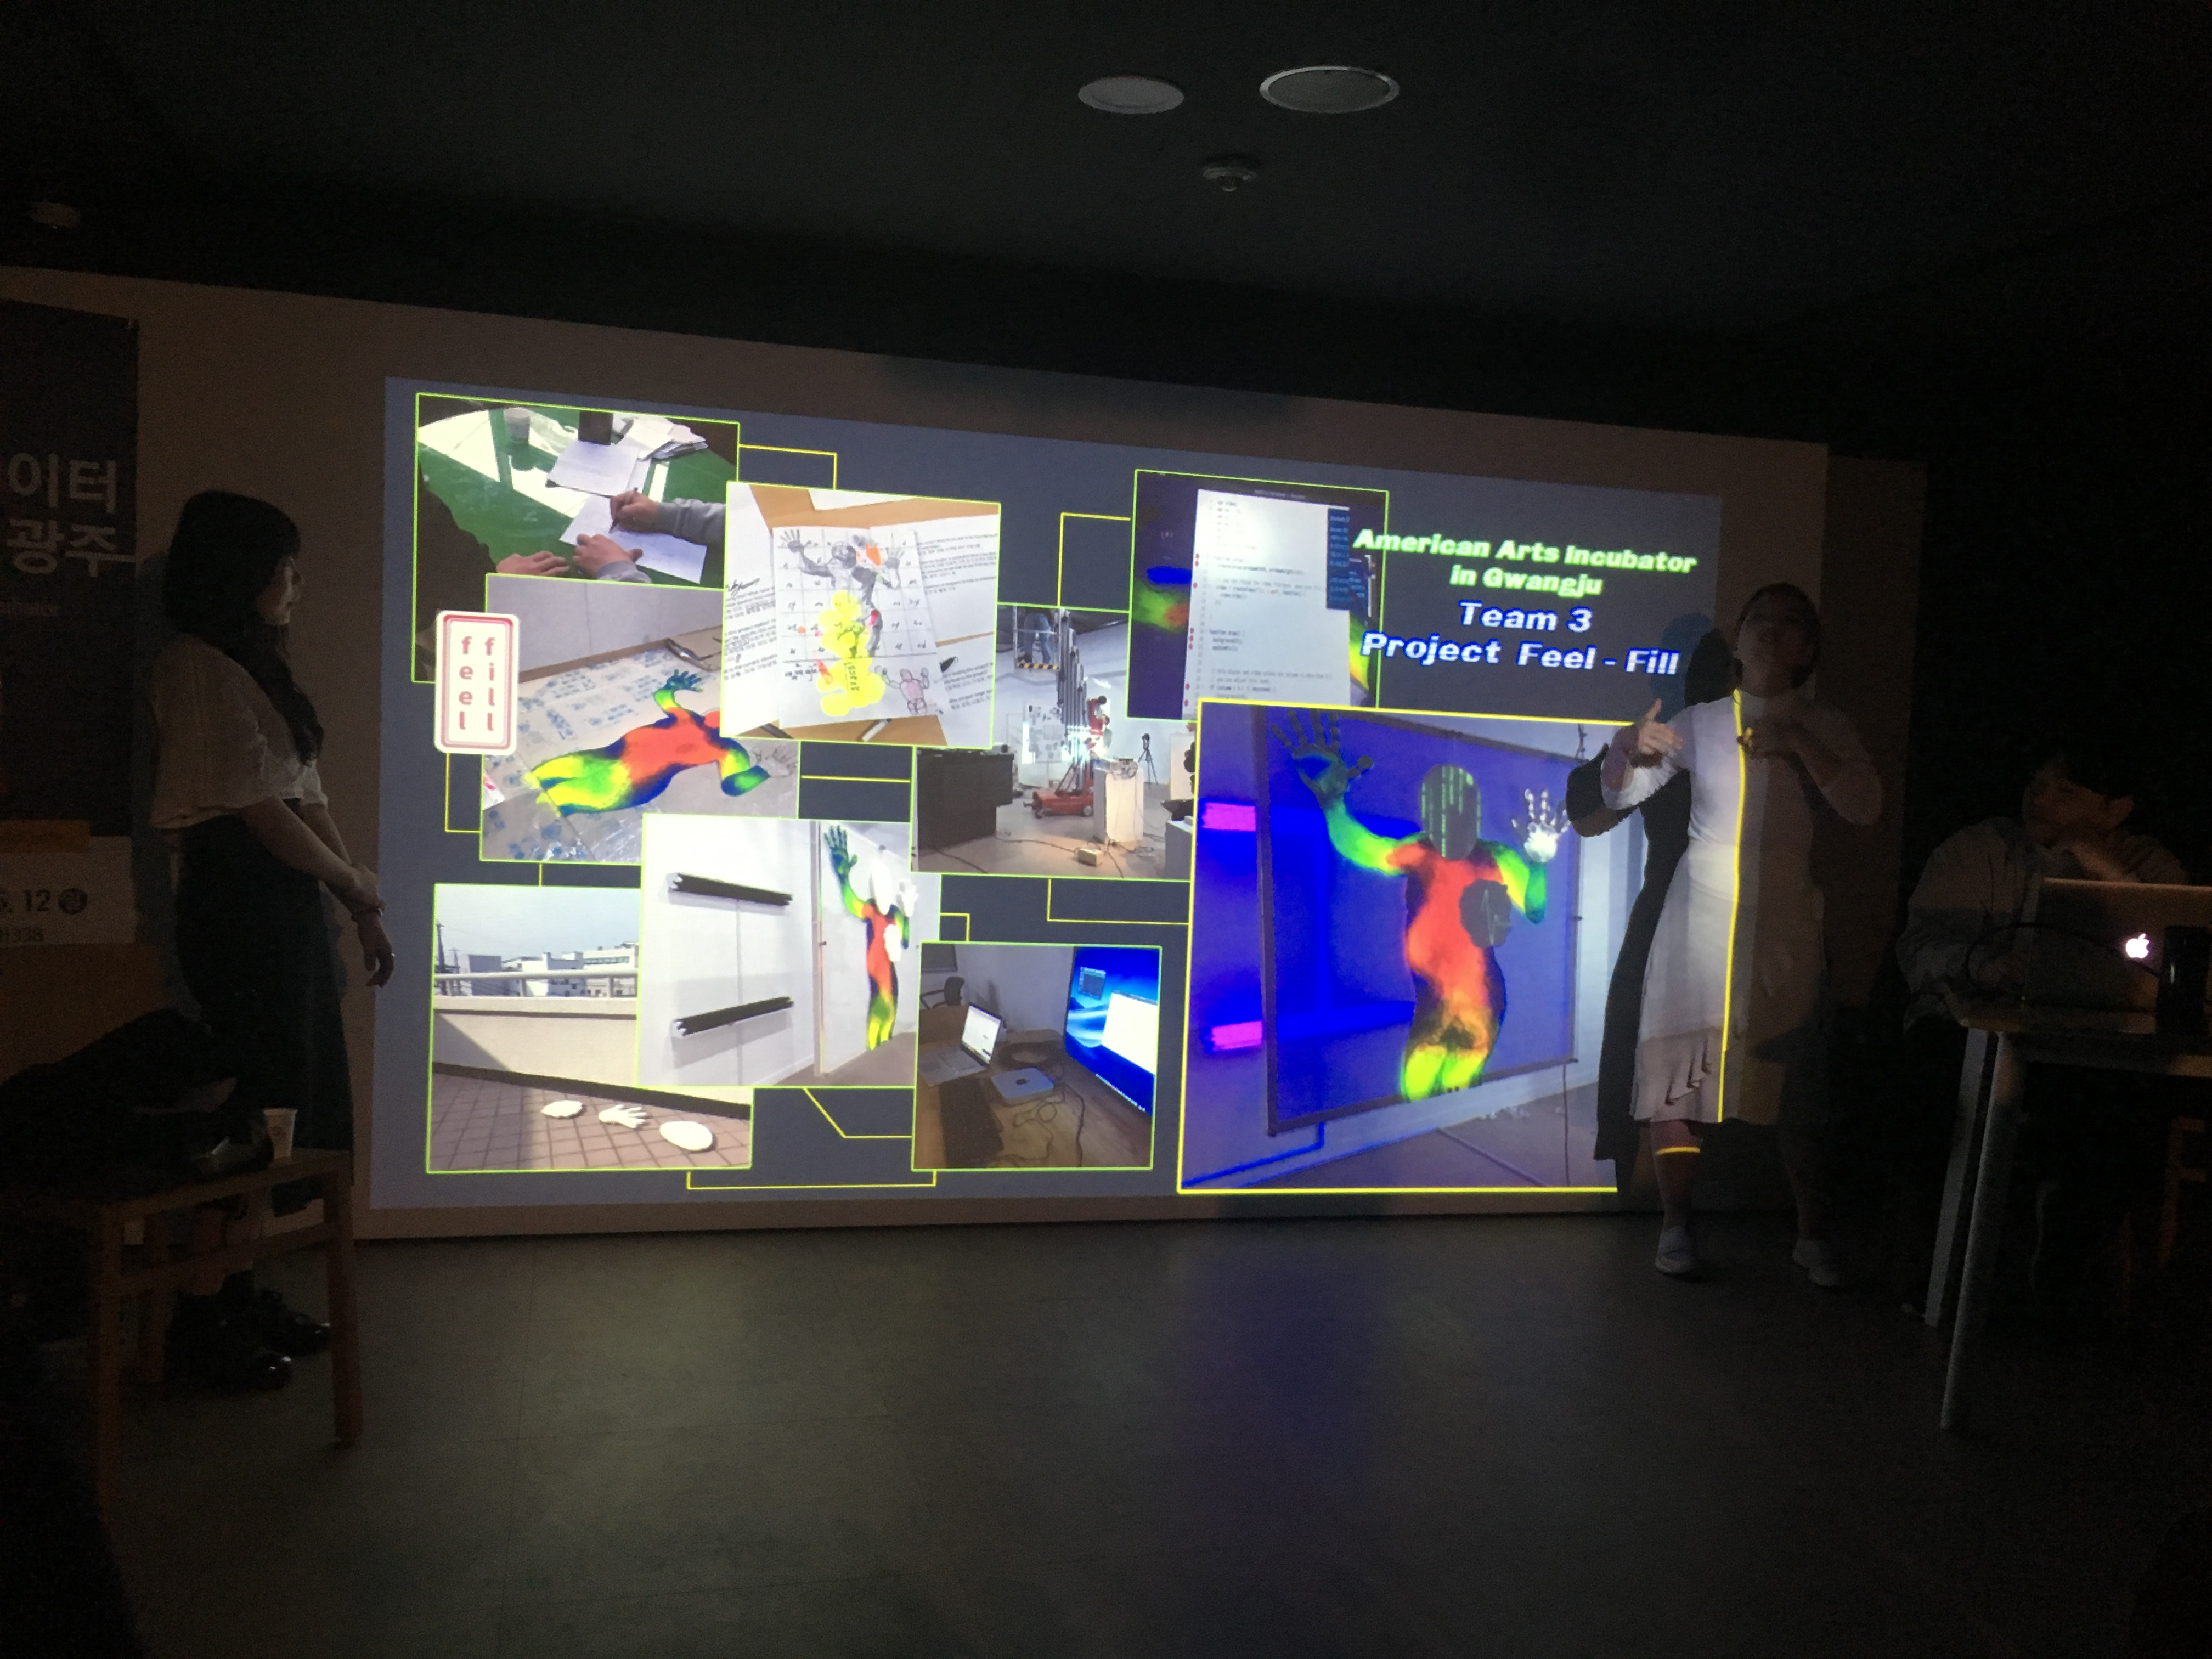 Two participants present in front of a projection of their work featuring bodies, colors, and sketches